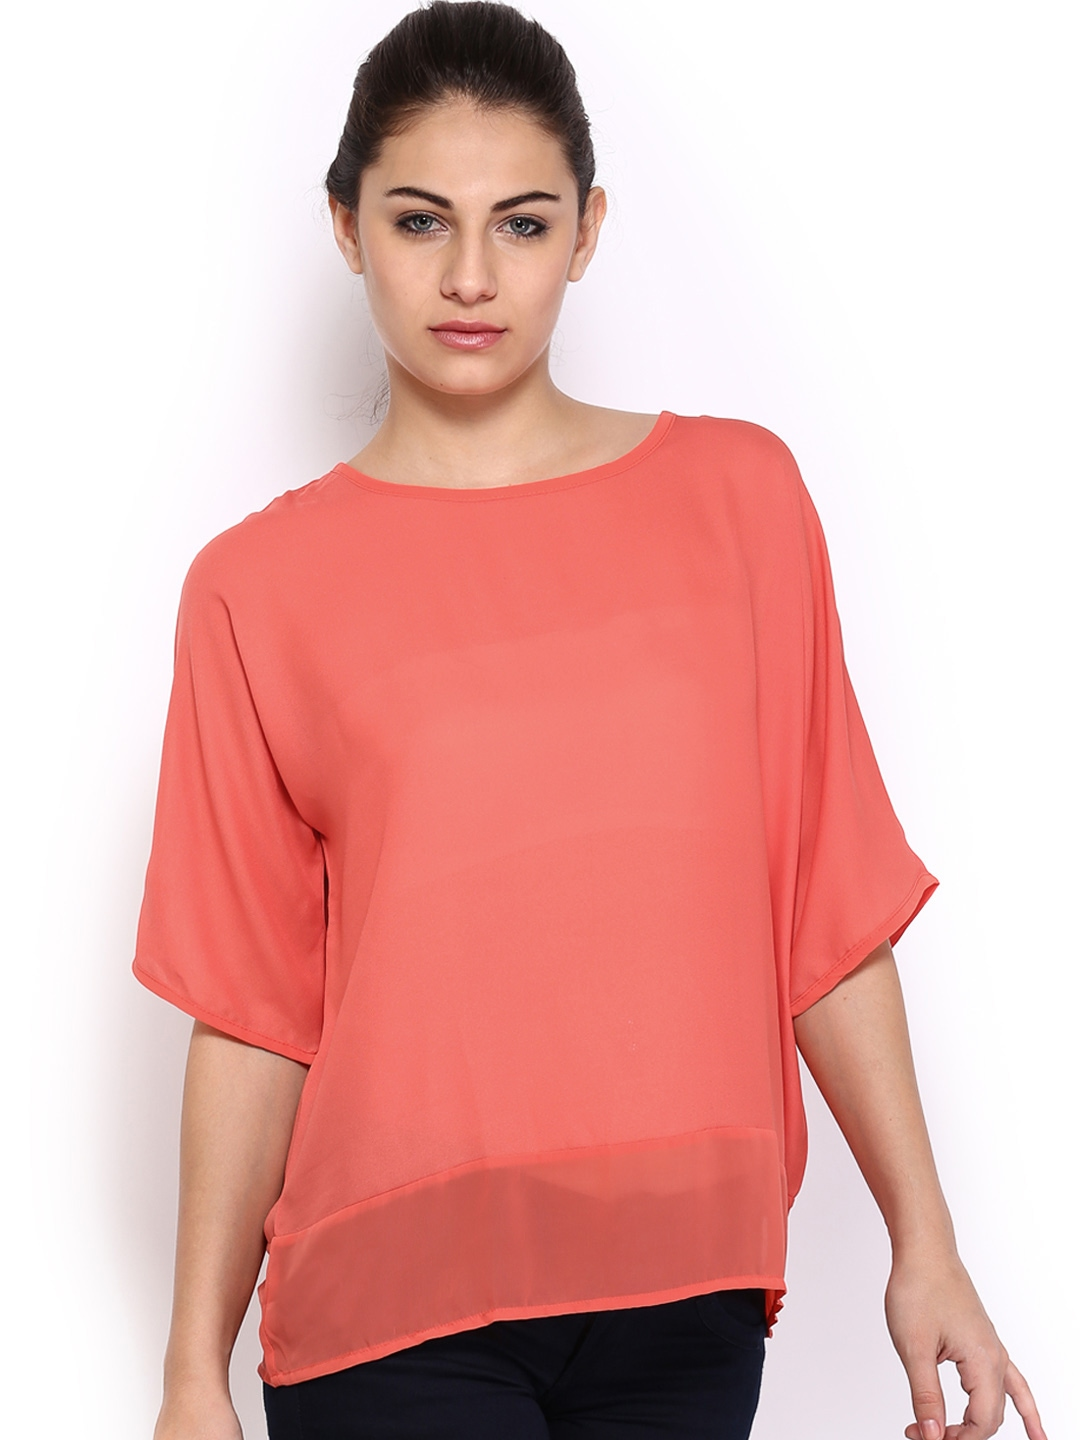 Find coral tops for women at ShopStyle. Shop the latest collection of coral tops for women from the most popular stores - all in one place.